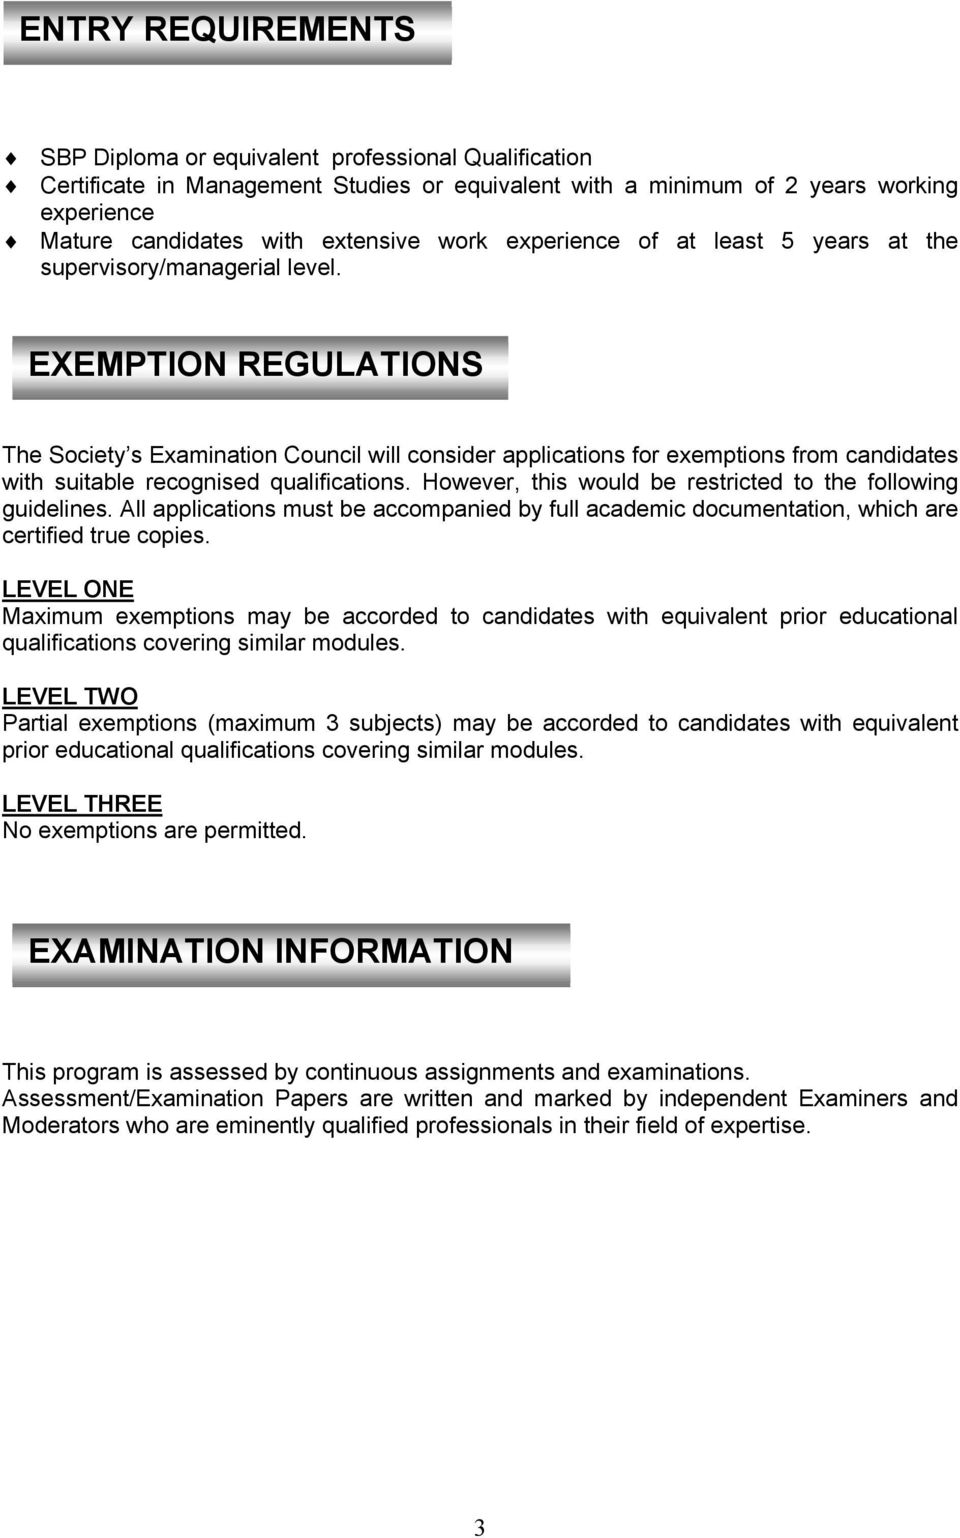 EXEMPTION REGULATIONS The Society s Examination Council will consider applications for exemptions from candidates with suitable recognised qualifications.